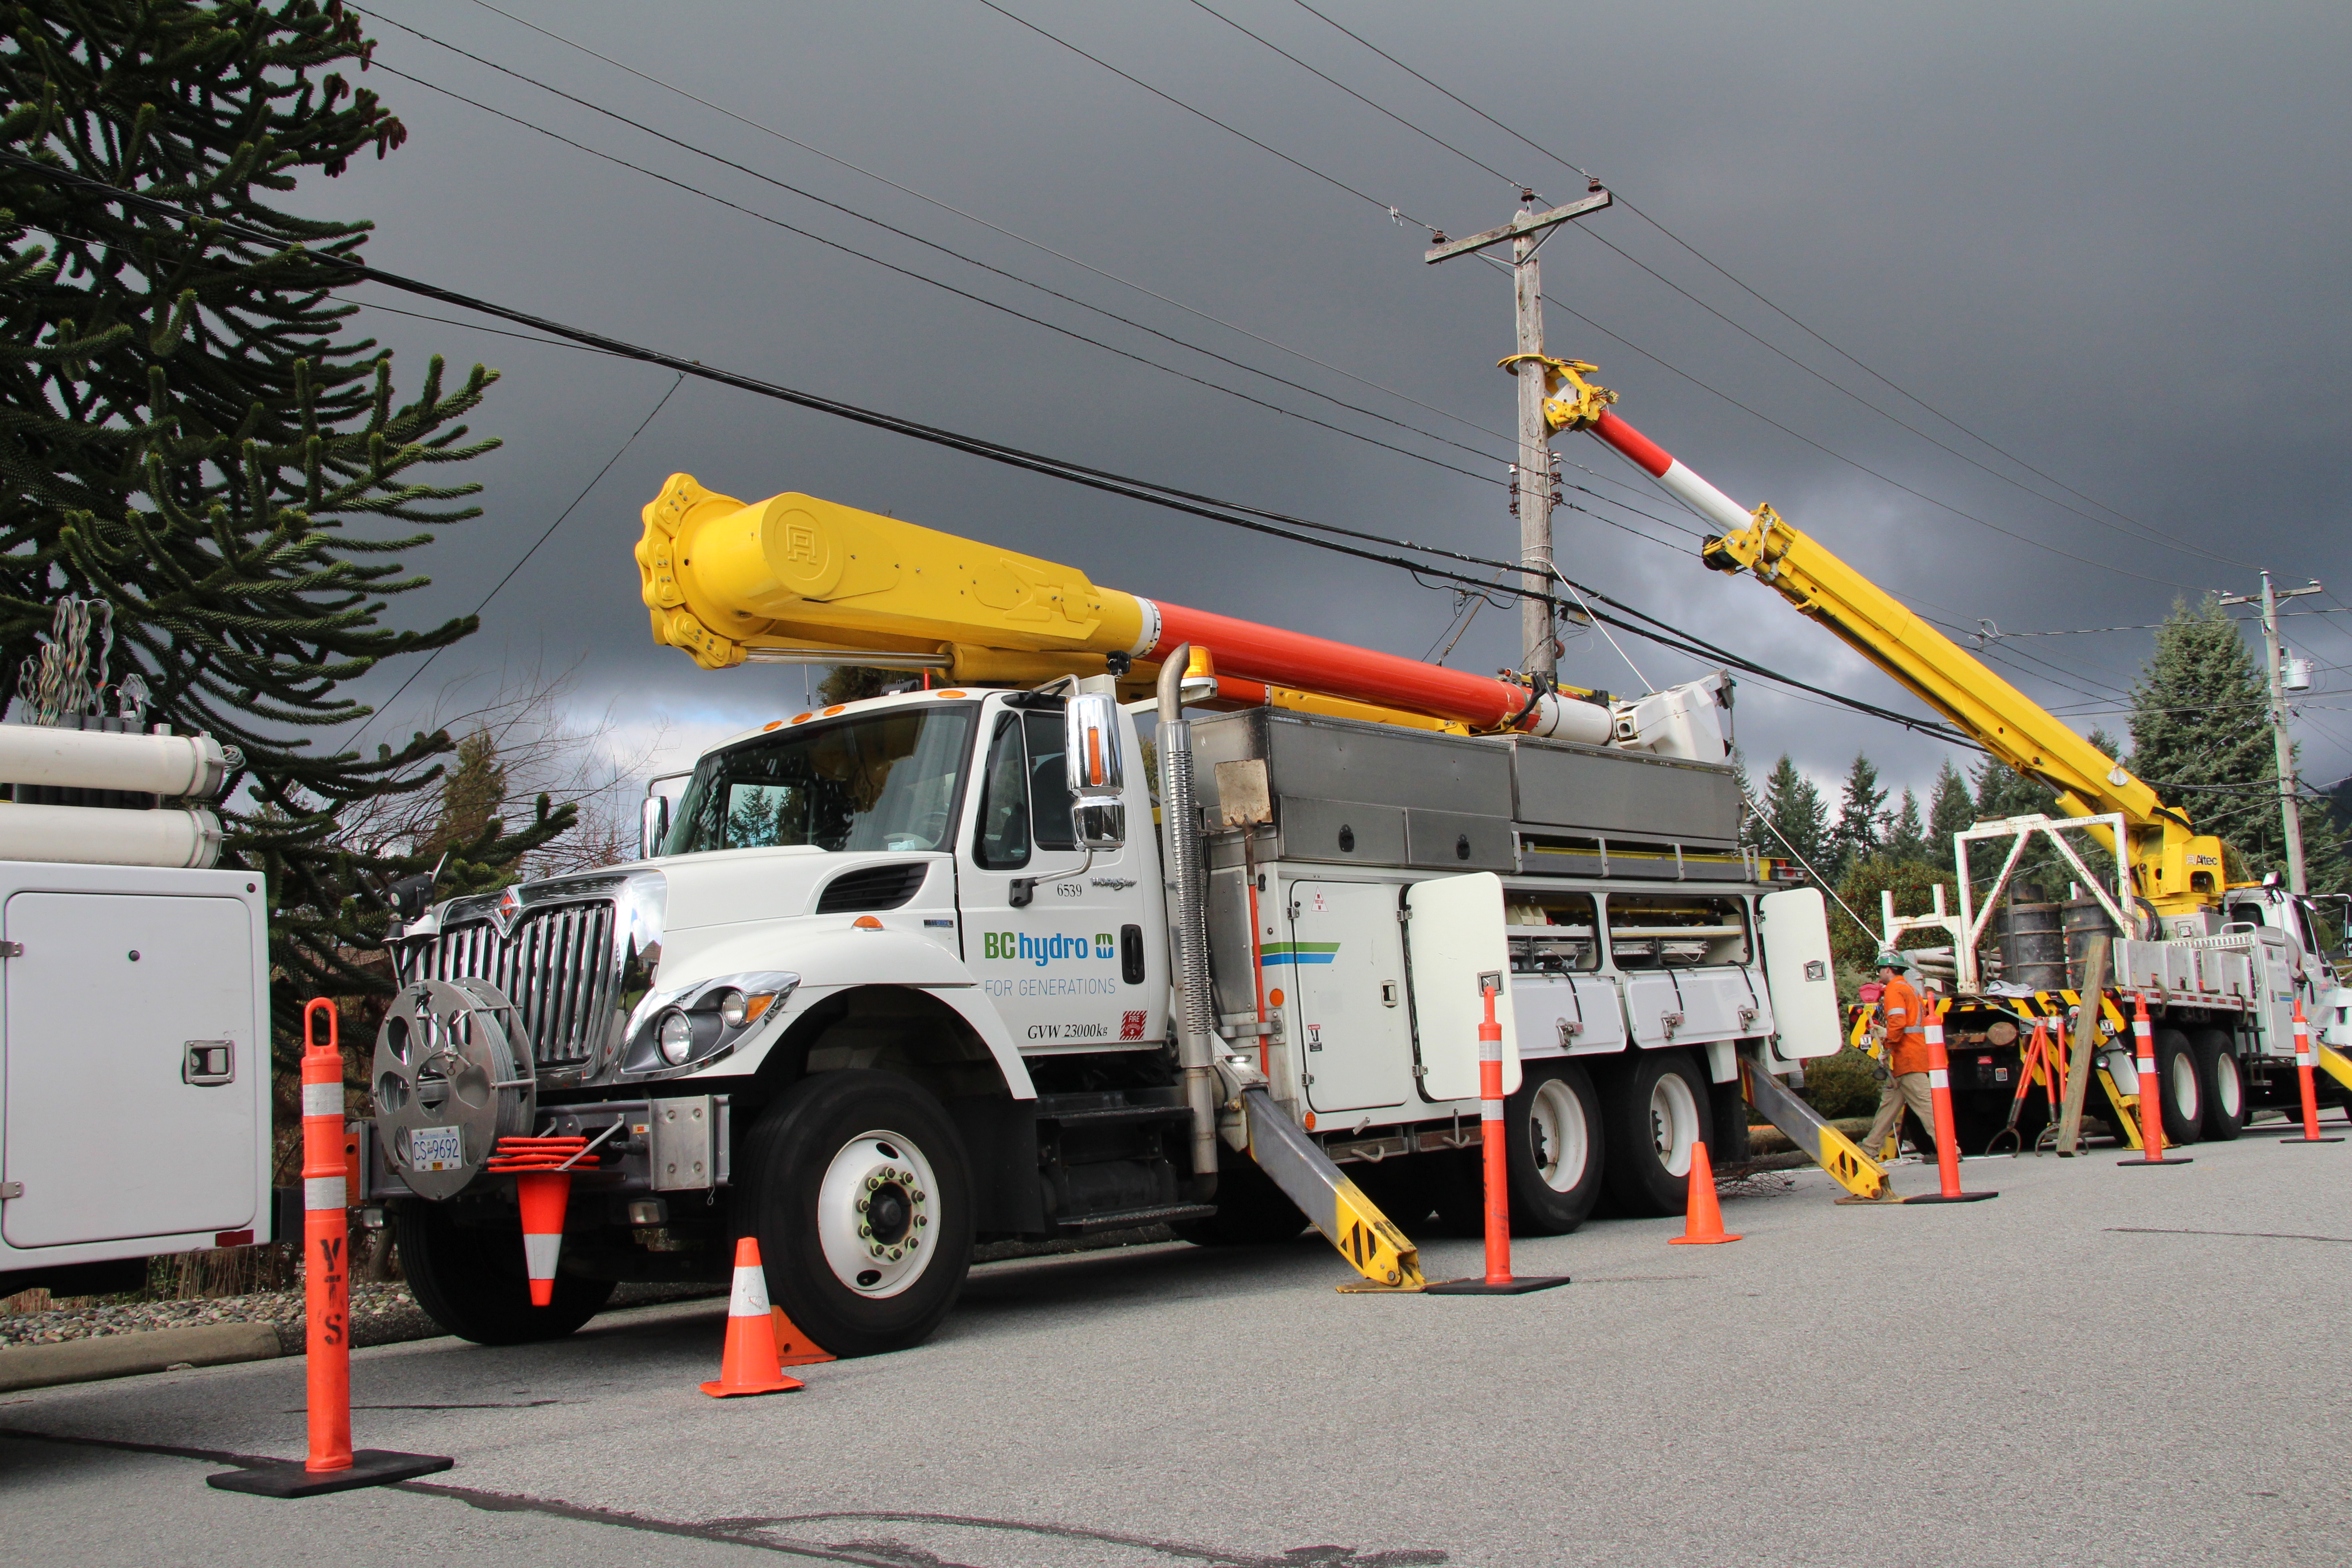 257 Wooden Power Poles are being replaced in Surrey